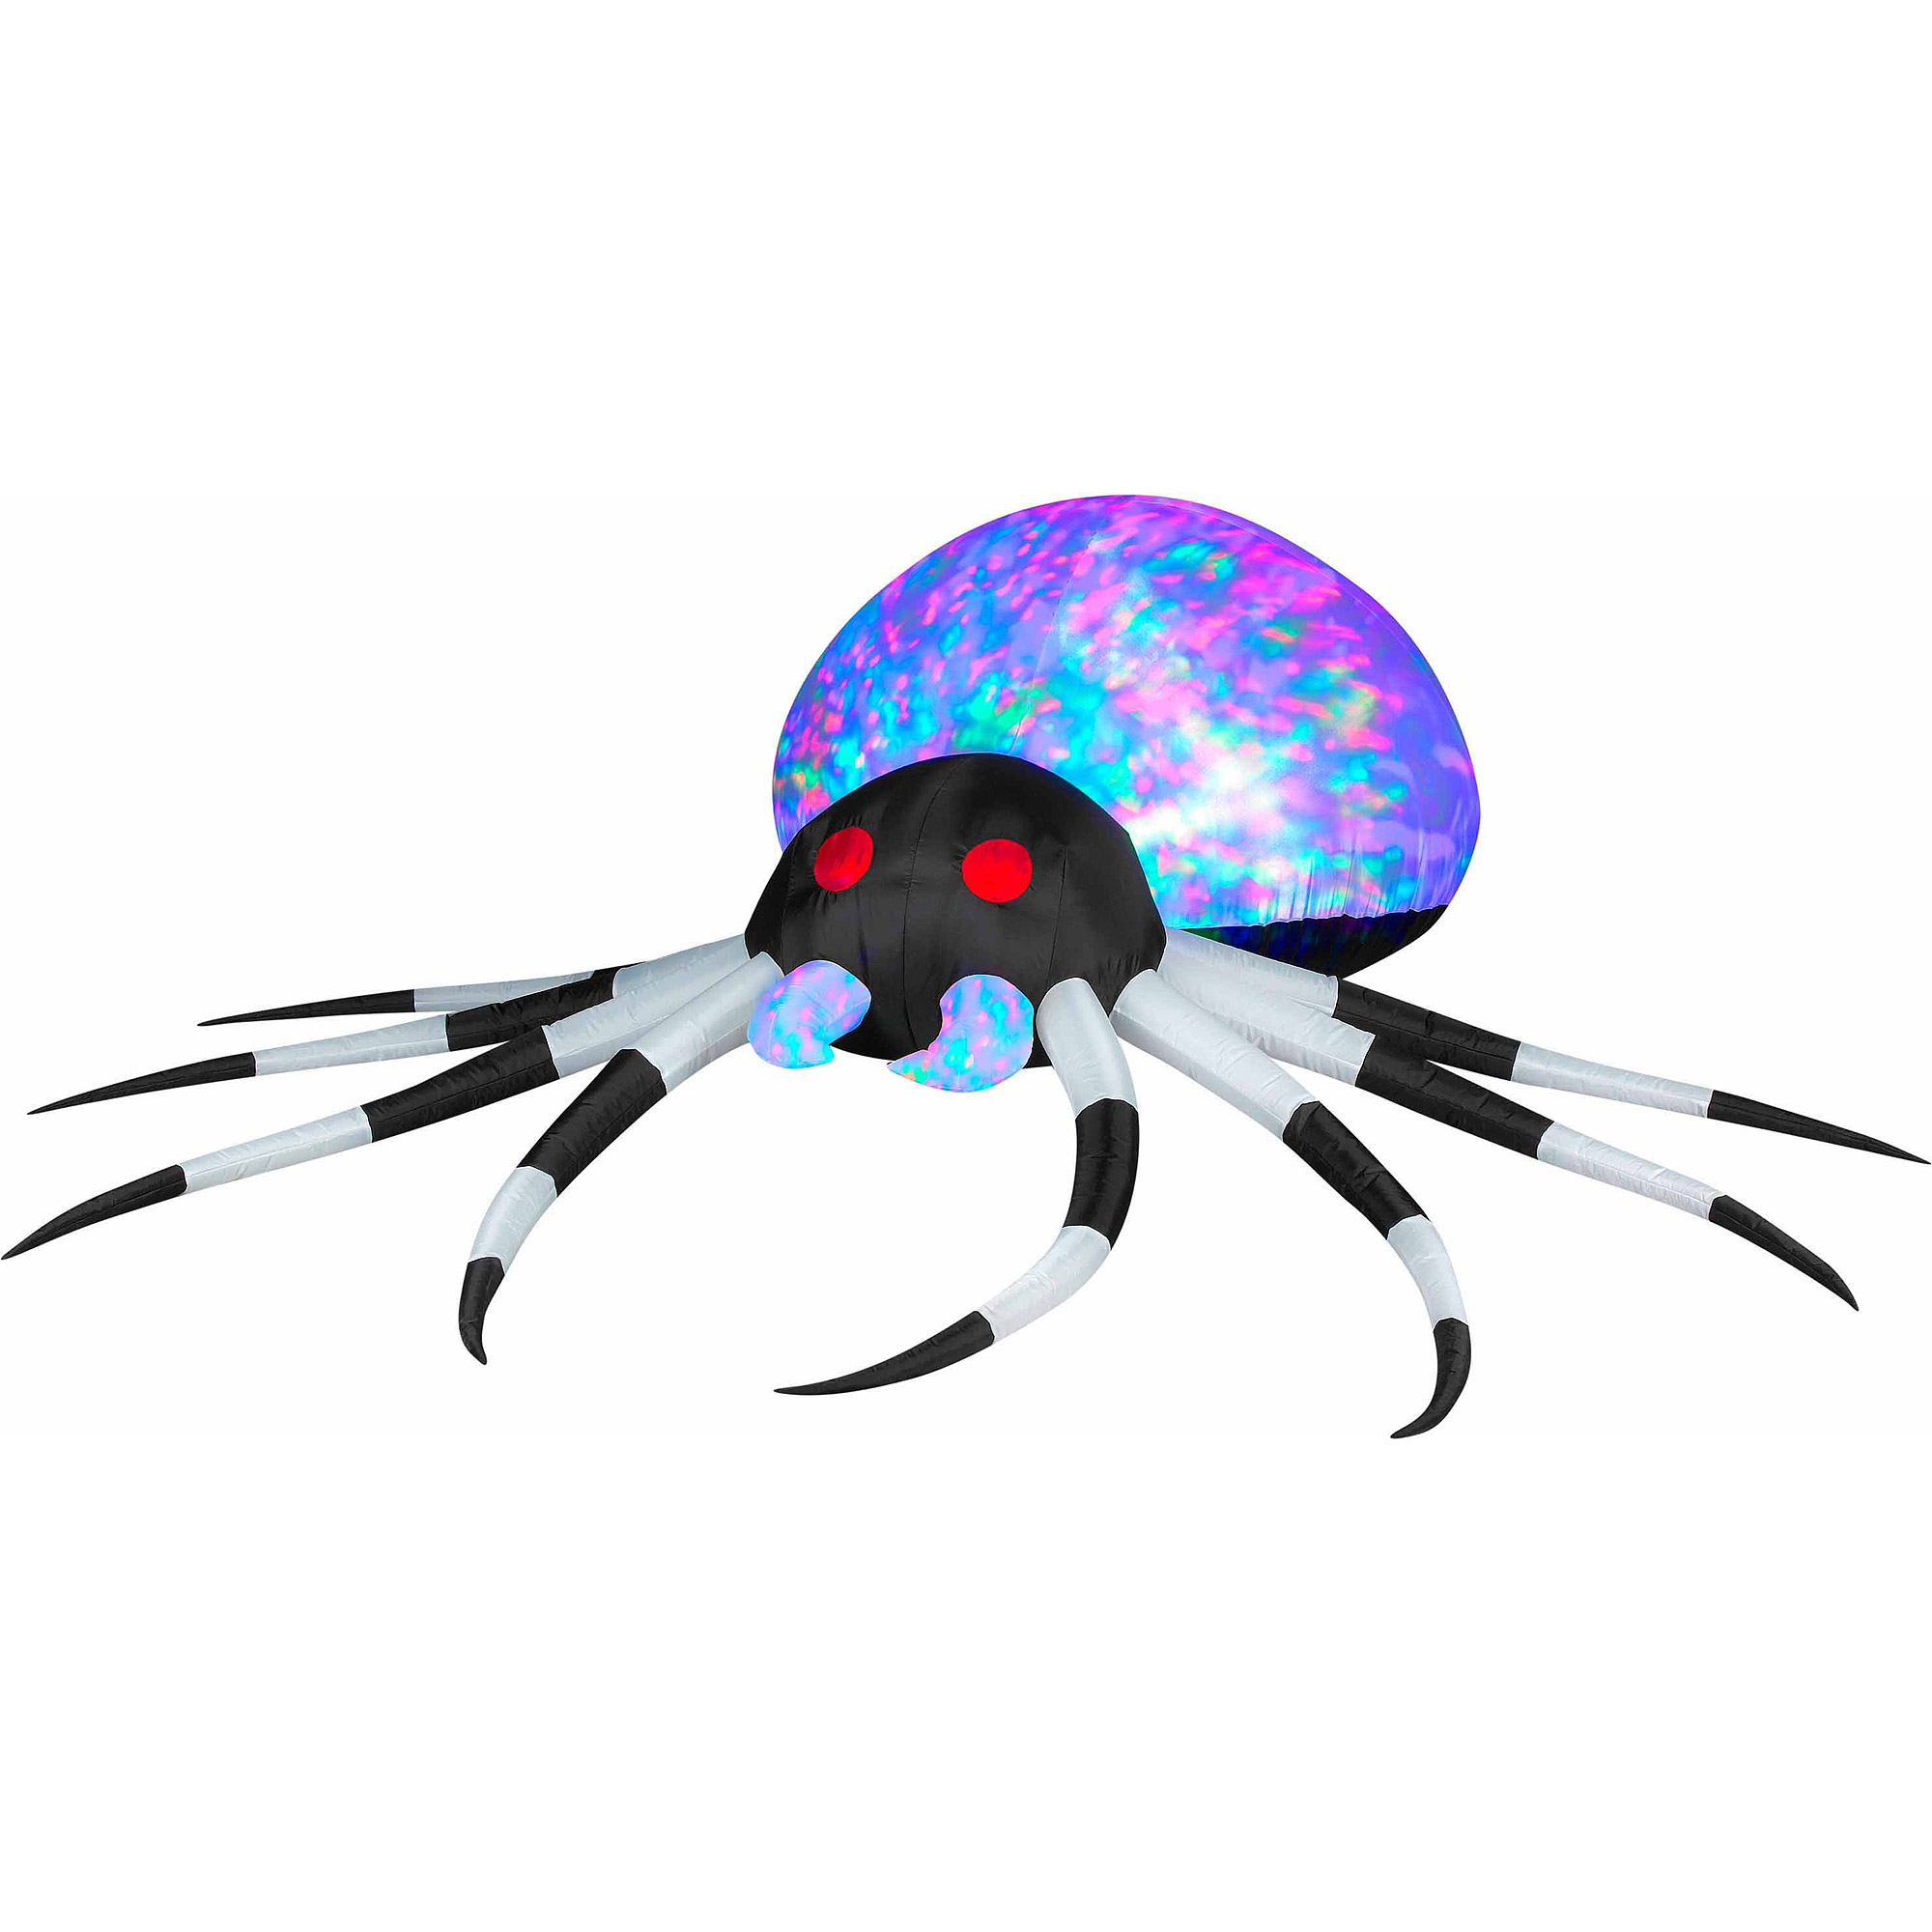 3 projection airblown inflatables kaleidoscope blackwhite spider halloween decoration walmartcom - Halloween Inflatables Clearance